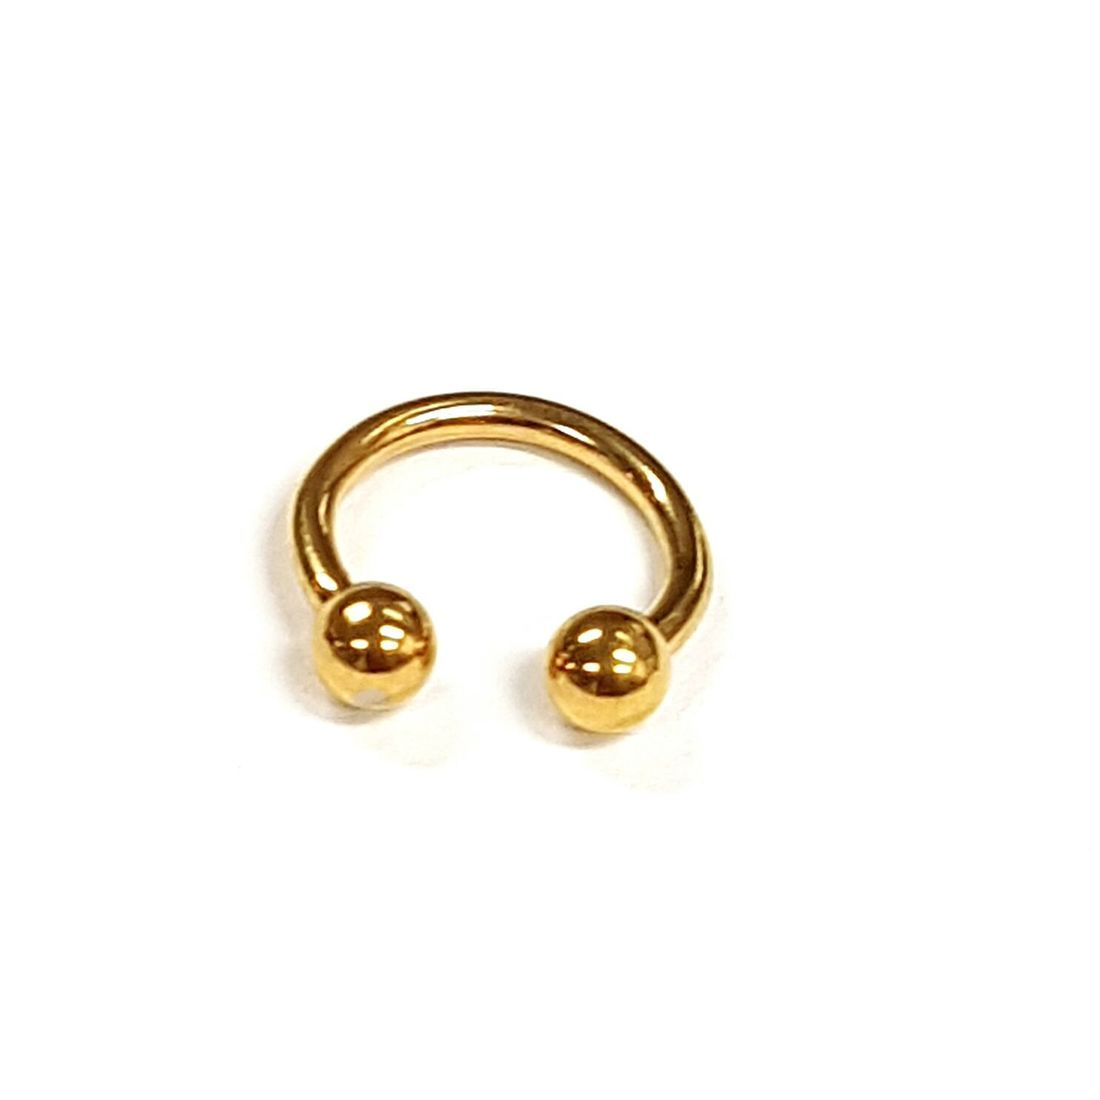 1.2mm x 8mm Gold Horseshoe 3mm balls   available at Kazbah online and our Leicester City Centre Shop